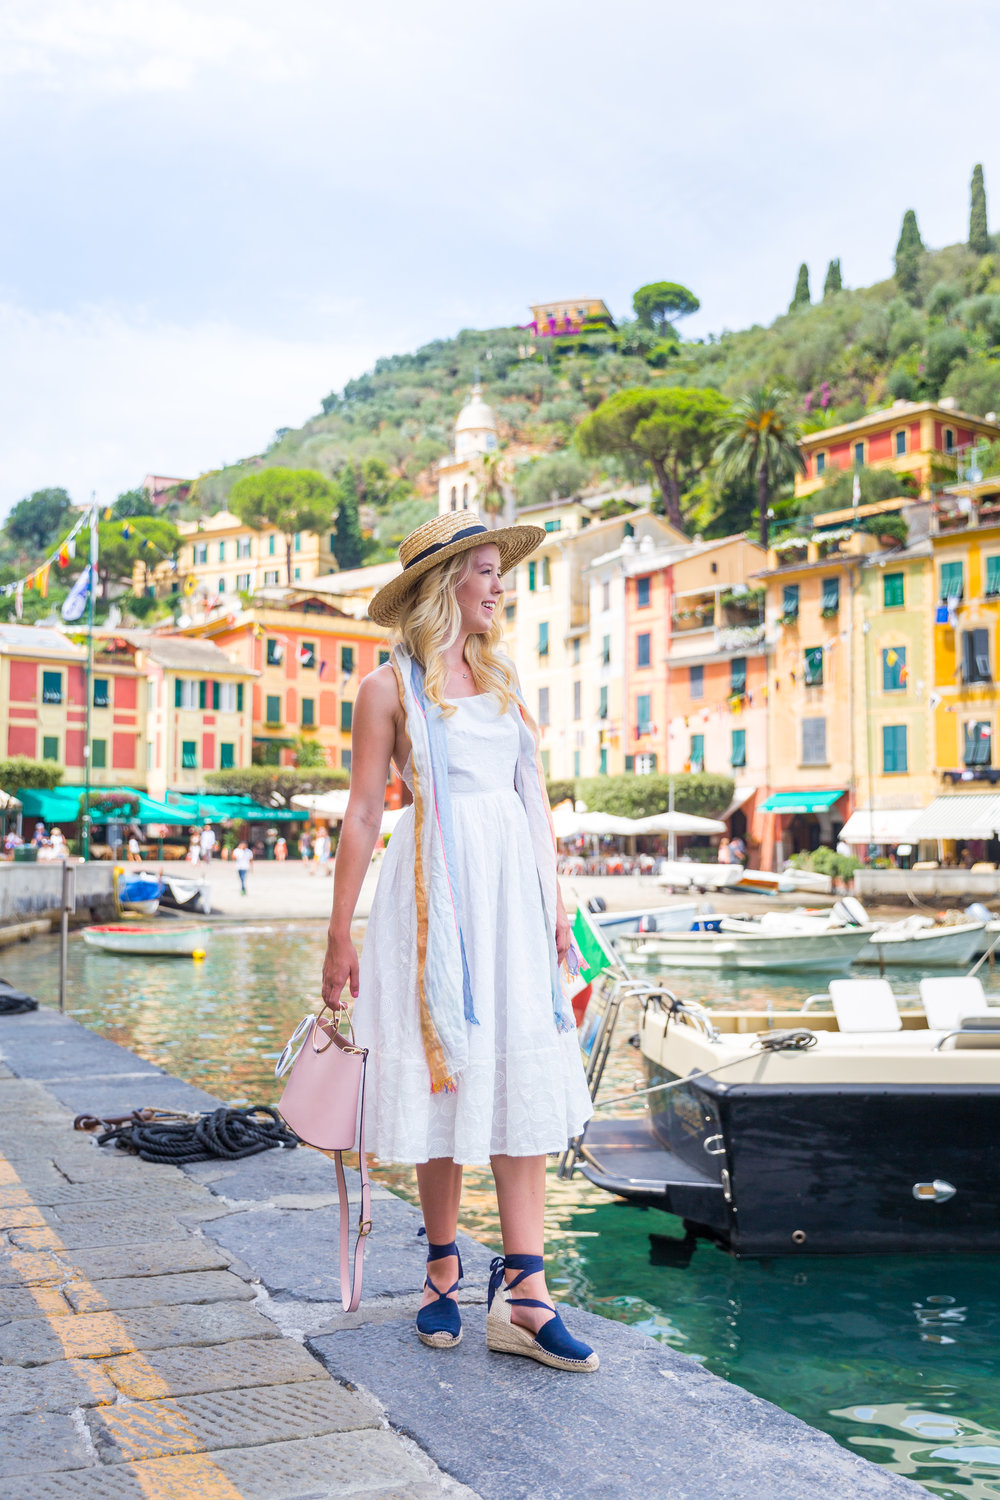 Italy Liguria Portofino Fashion White Sundress-3.jpg